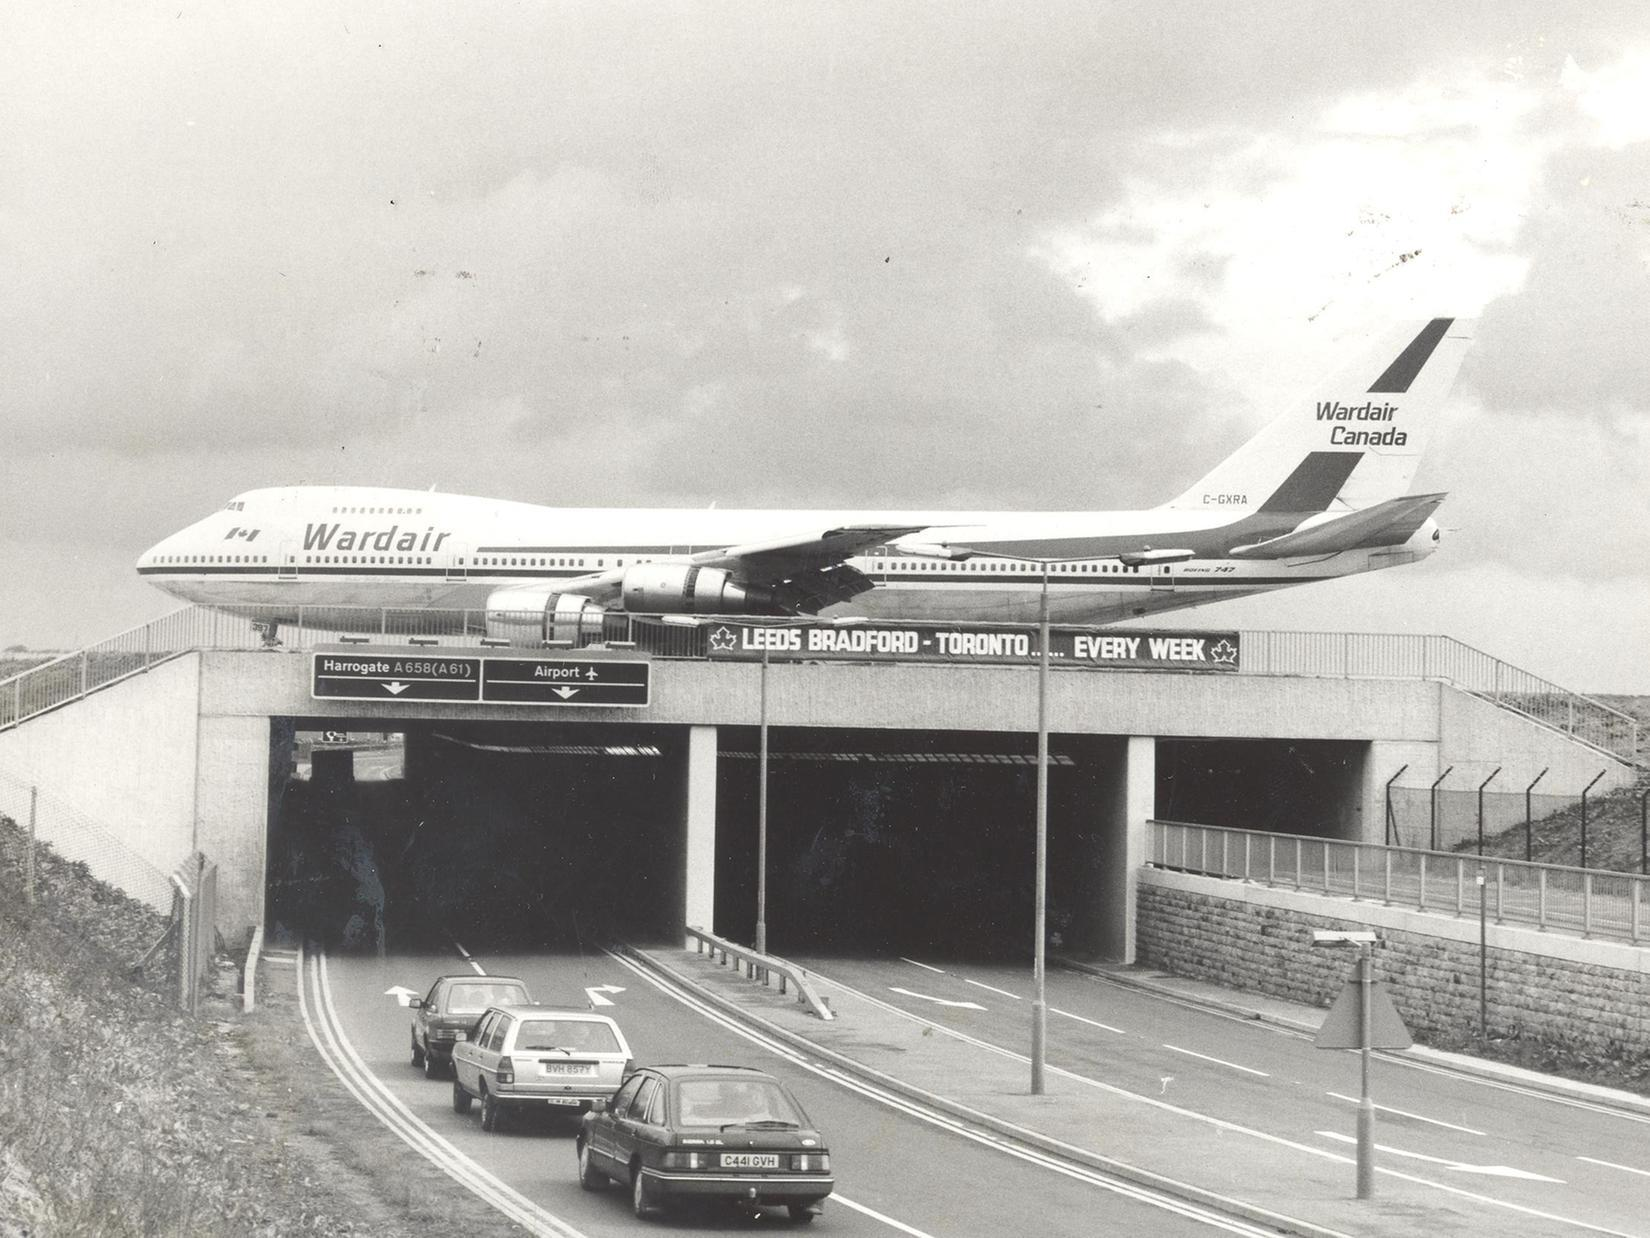 39 unseen photos of Leeds Bradford Airport from the 1980s